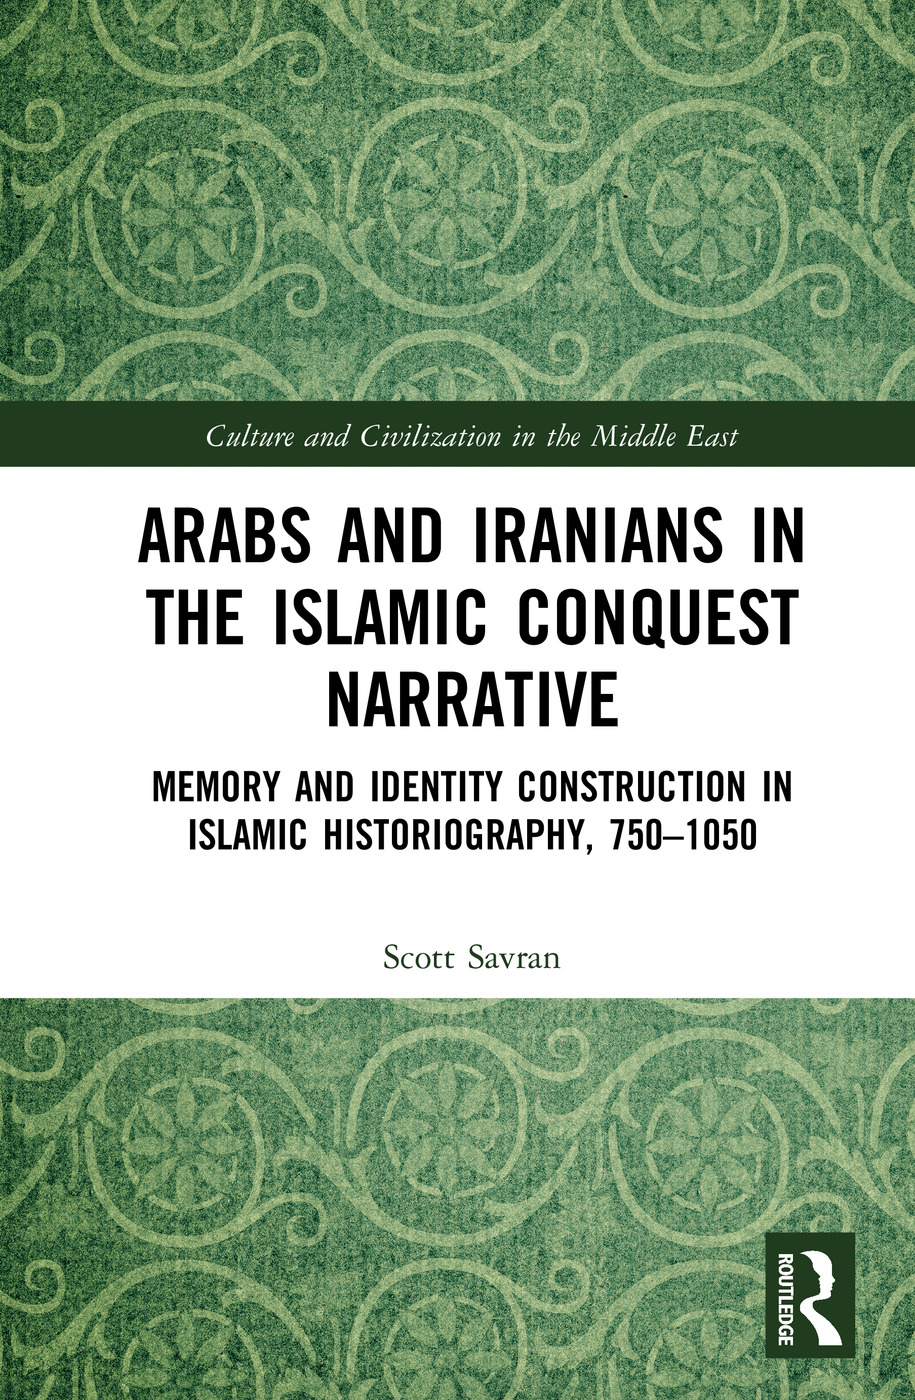 Arabs and Iranians in the Islamic Conquest Narrative: Memory and Identity Construction in Islamic Historiography, 750-1050 book cover